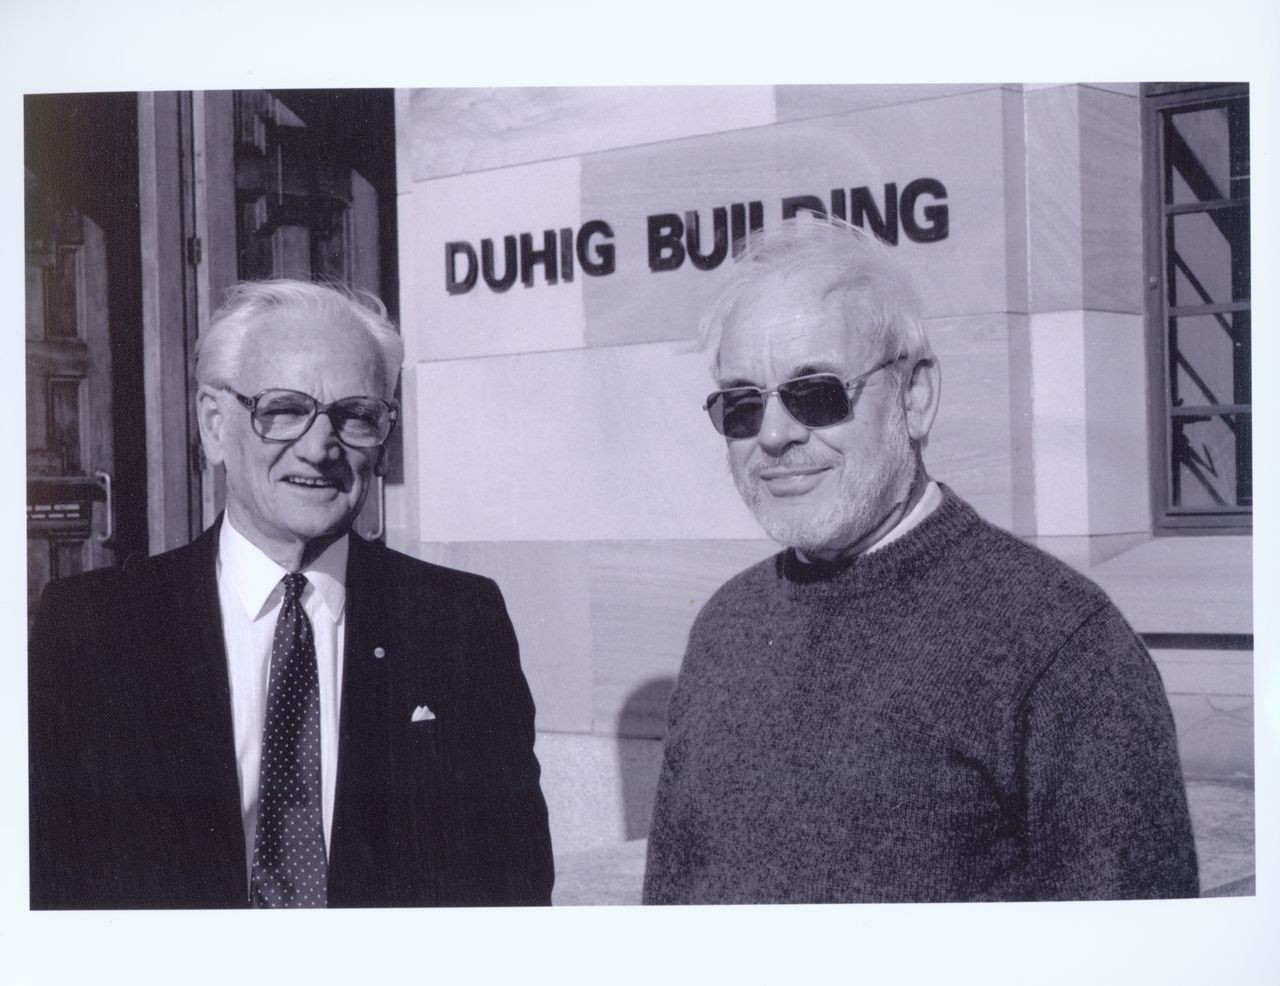 Former University Librarian Harrison Bryan with University Librarian Derek Fielding outside the Duhig Building at the University of Queensland, Brisbane, 20 Jul 1992. Used with the permission of Fryer Library University of Queensland Photograph Collection, UQFL466, AG/P/112.